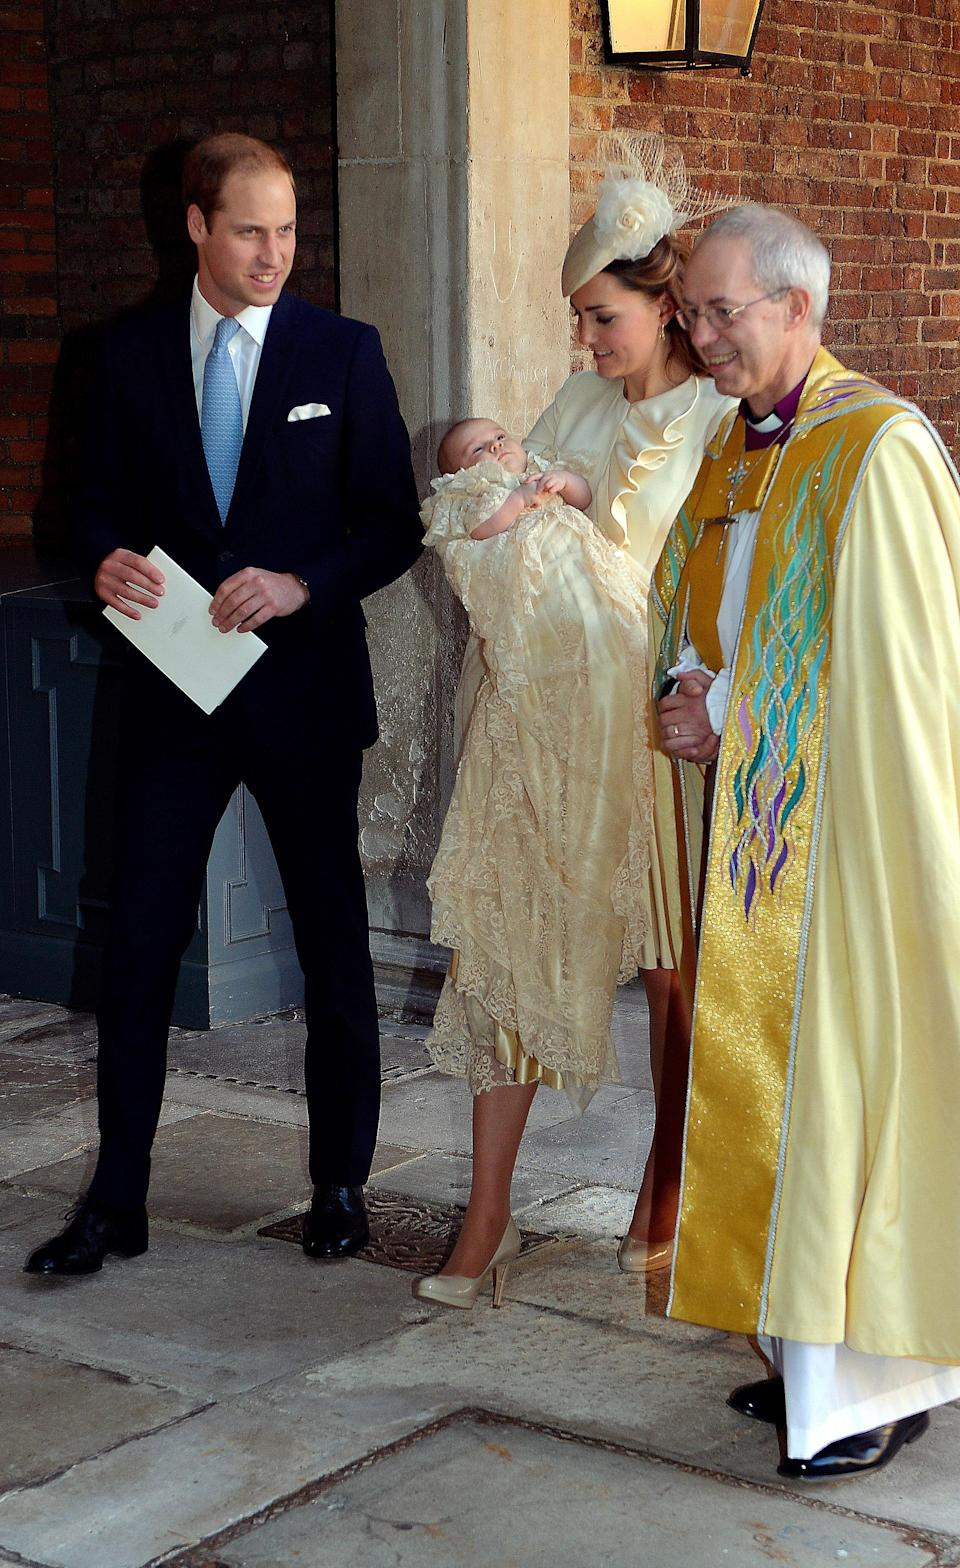 The Duchess of Cambridge carries her son Prince George with the Duke of Cambridge as they leave the Chapel Royal following the christening with Archbishop of Canterbury, Justin Welby. [Photo: Getty]